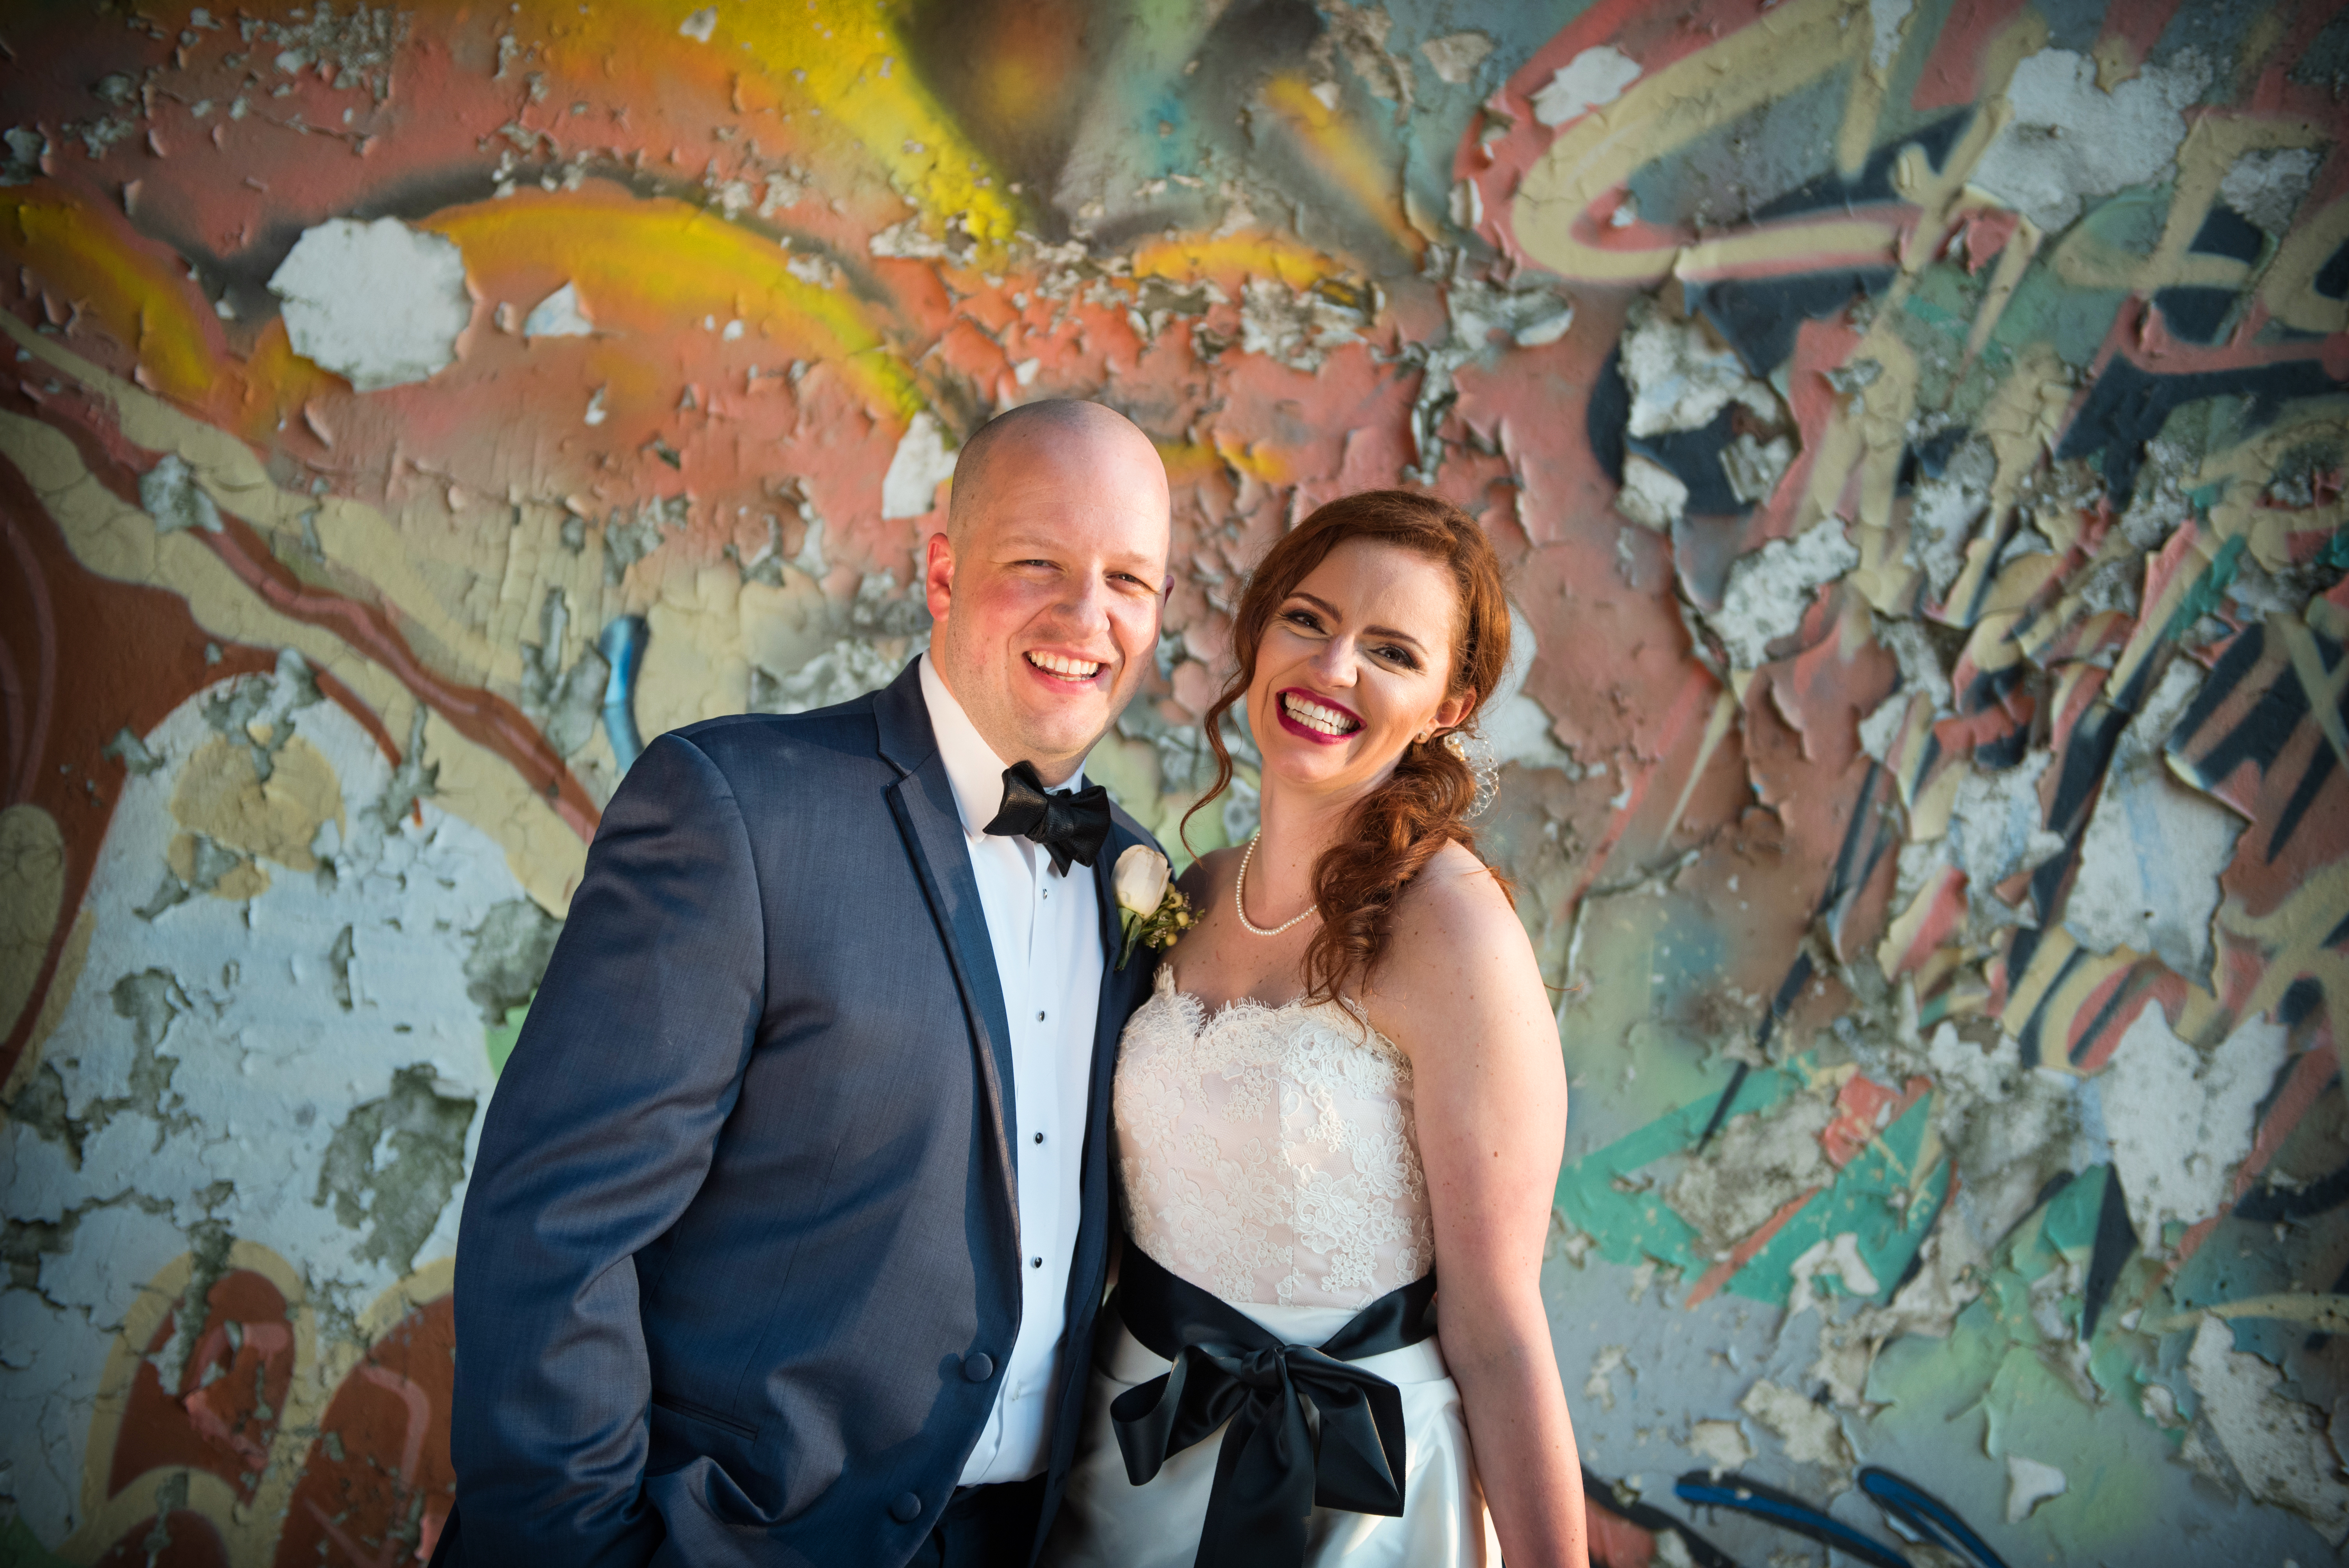 Colorful Bride and Groom Portrait Graffiti